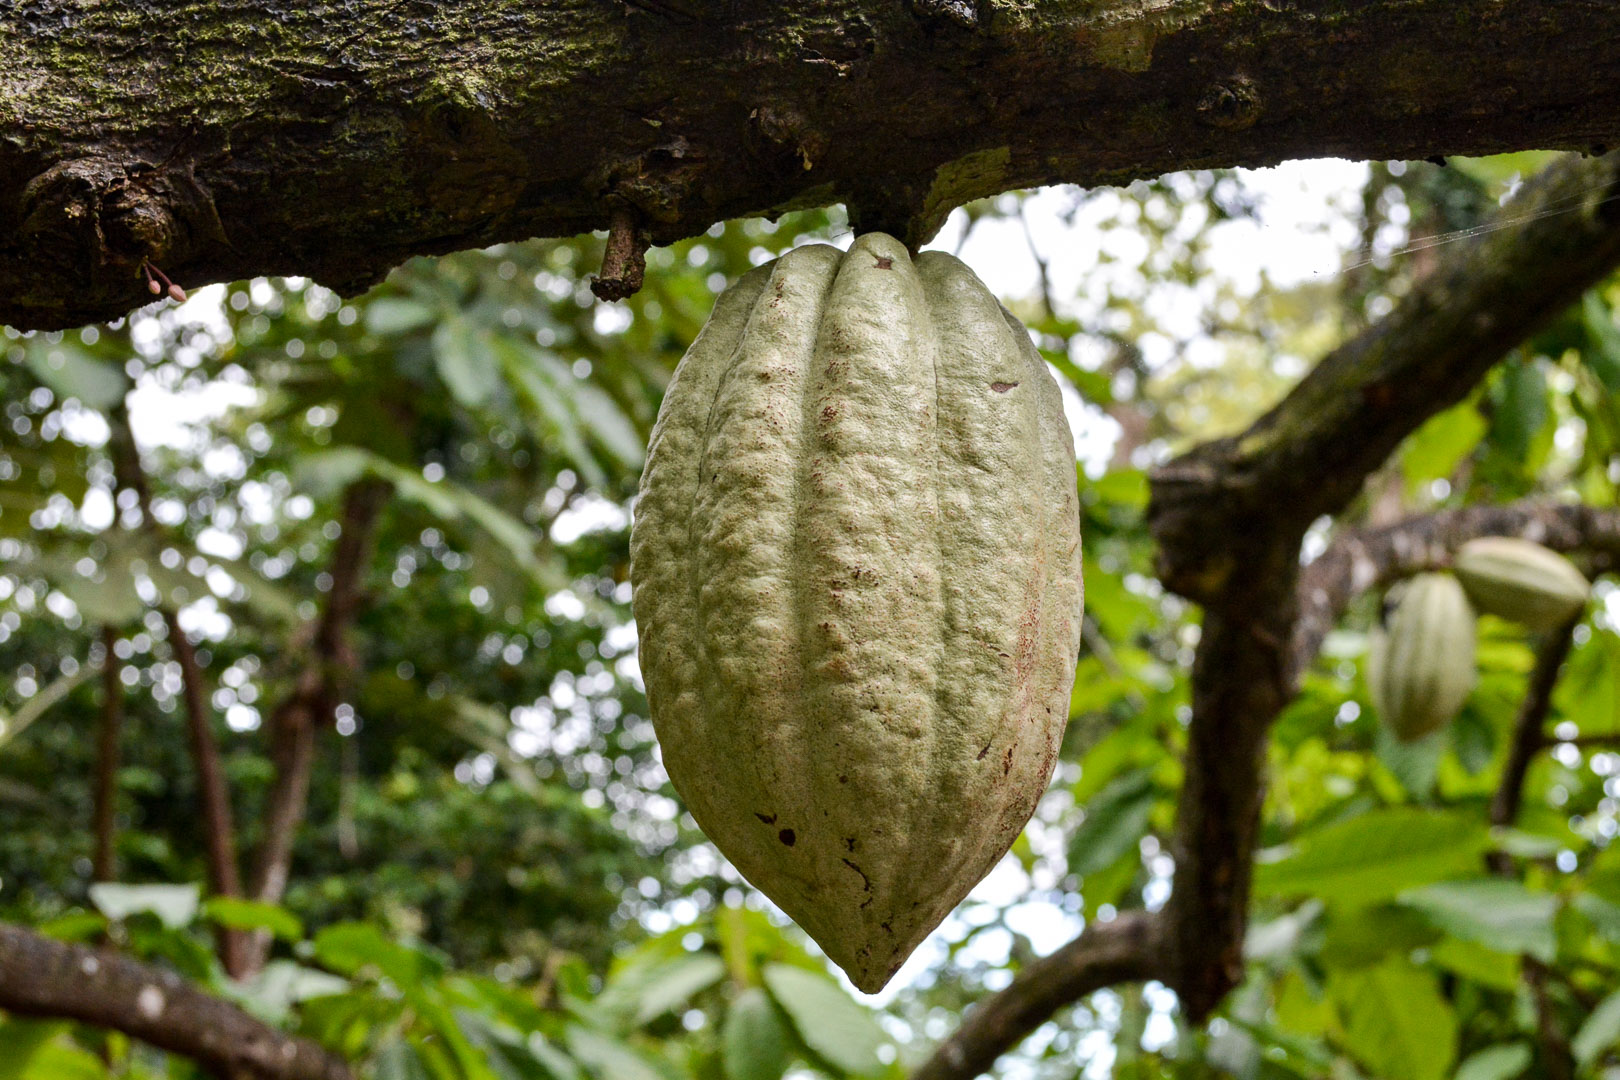 Another variety of the cacao pod